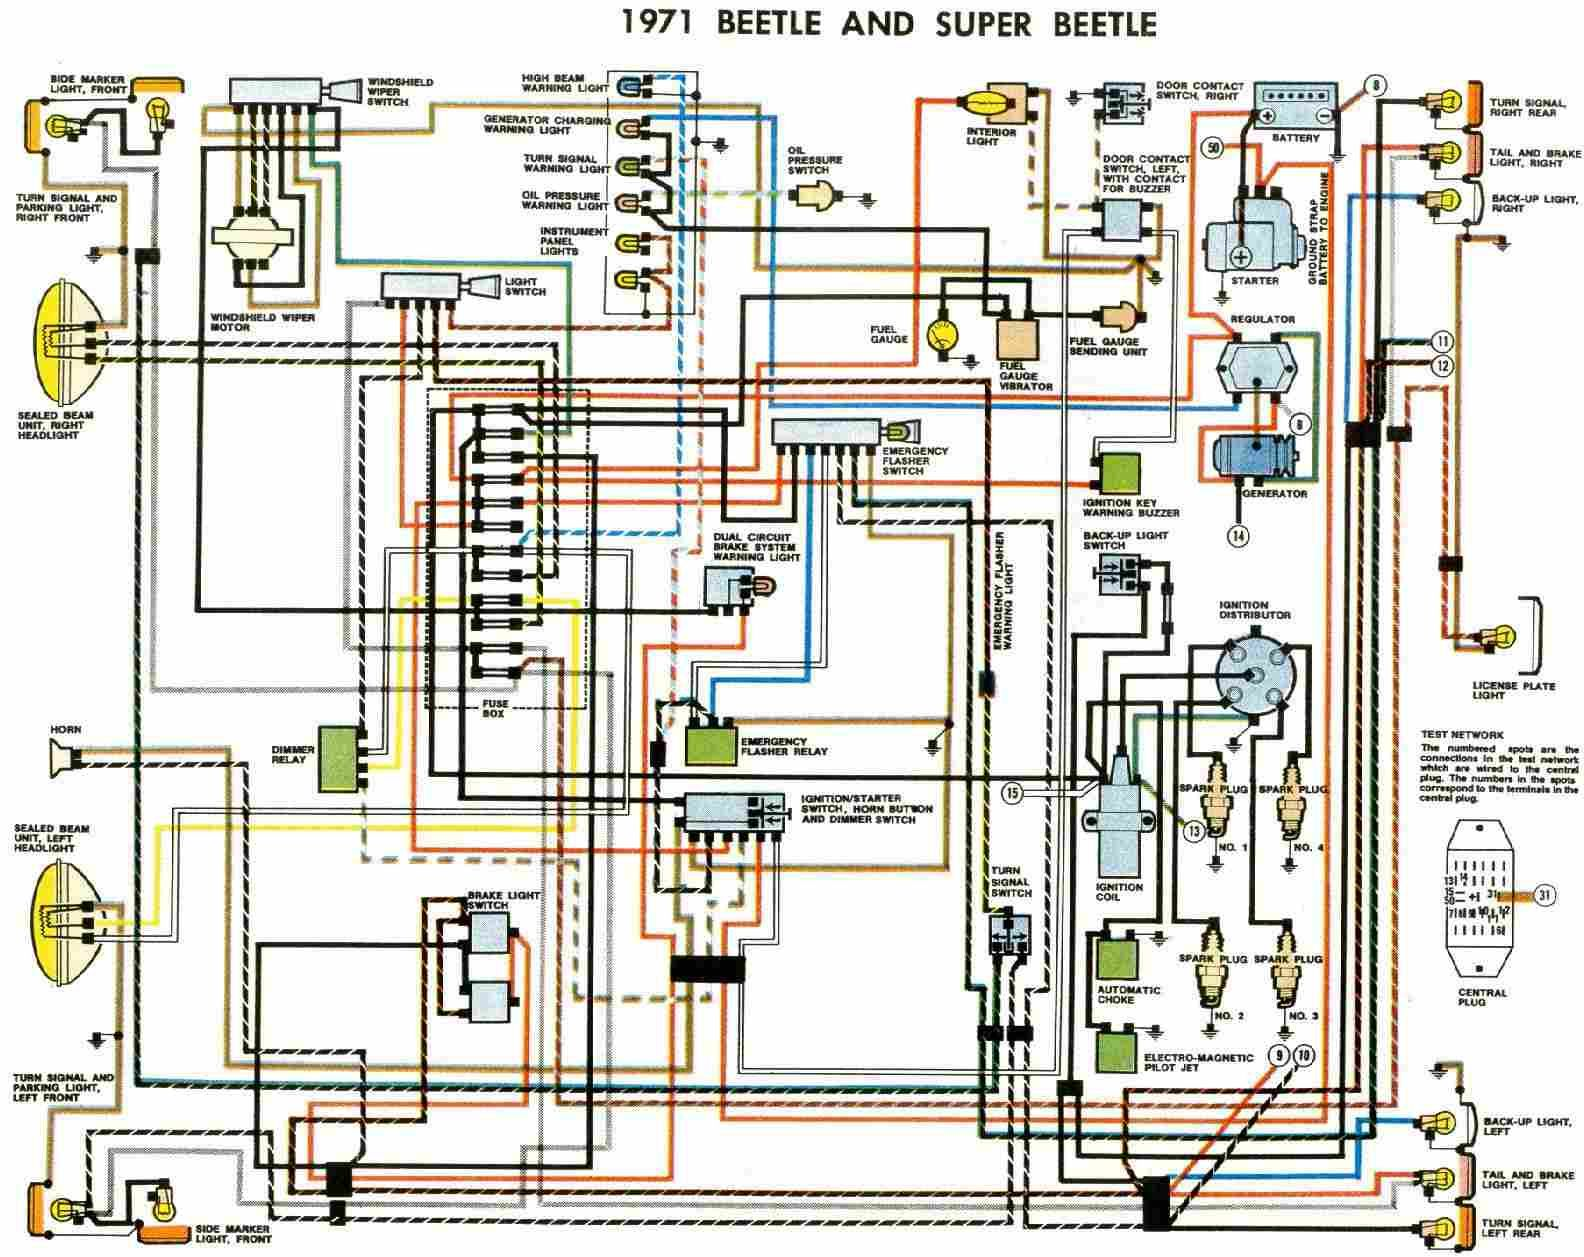 6379f2a777a0eb1b27fdba46670ceb6a free auto wiring diagram 1971 vw beetle and super beetle byocar 80 Beetle at soozxer.org